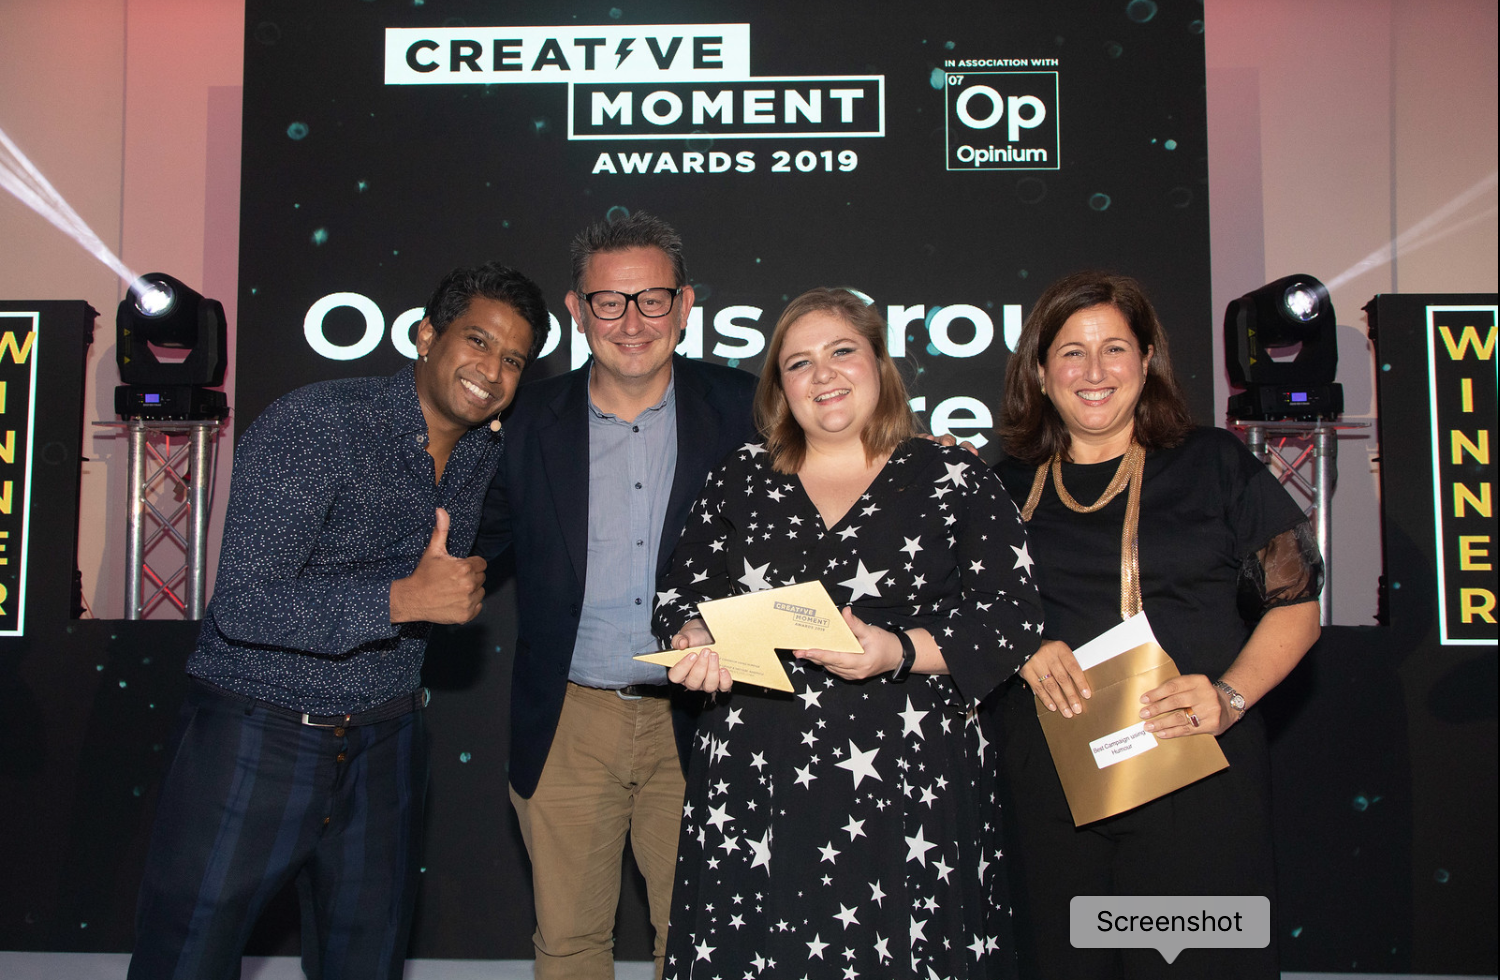 Octopus winning the Best Campaign using Humour for Tudder